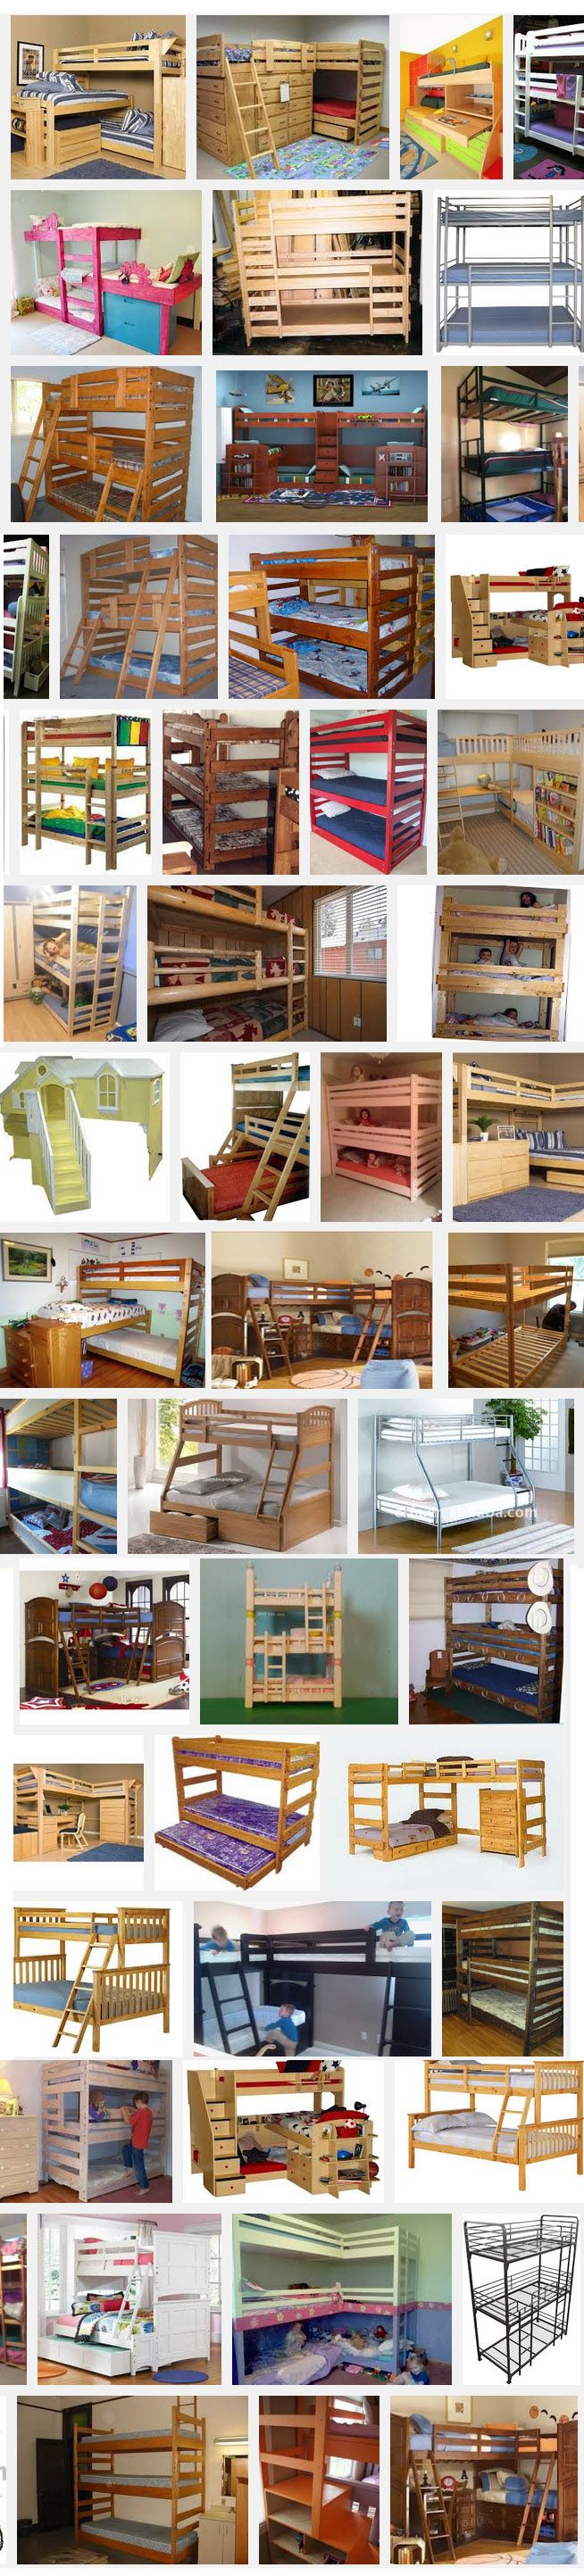 http://bunkbedplans247.com/wp-content/uploads/2013/02/Large-collection-of-triple-bunk-beds-with-plans.jpg